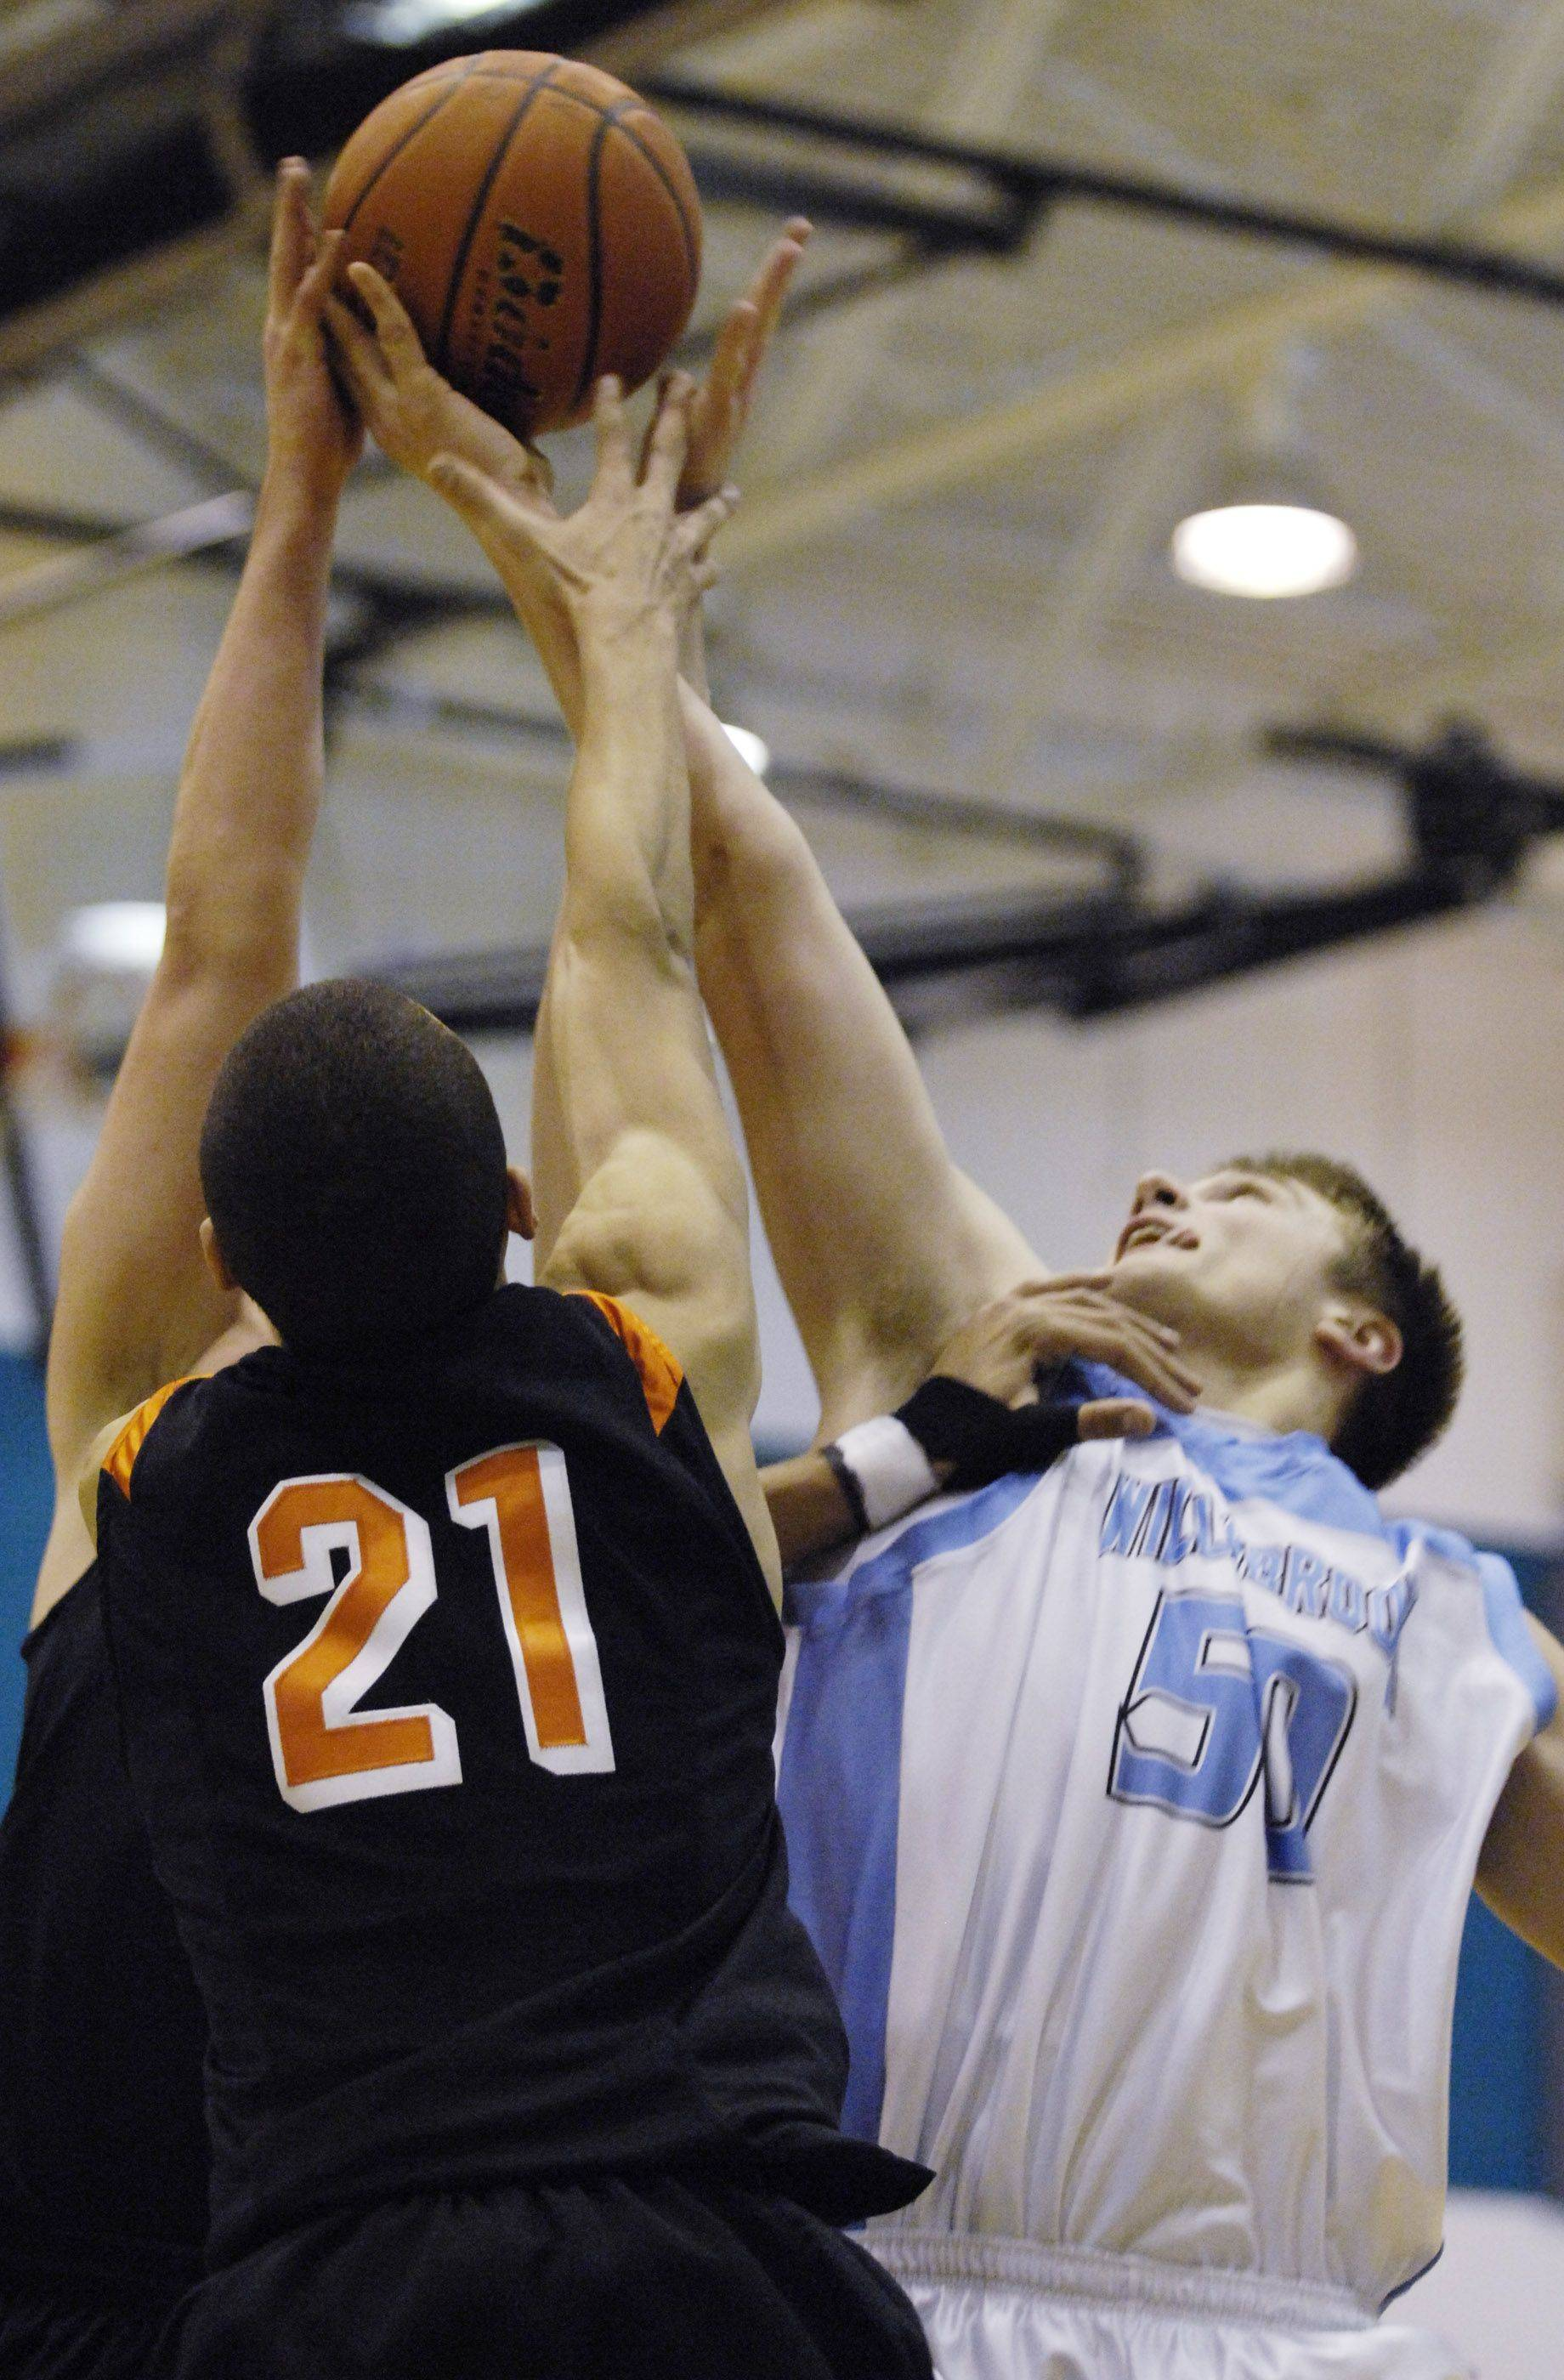 Images from the St. Charles East vs. Willowbrook boys basketball game at the Woodstock North MLK Shootout Monday, January 17, 2011.